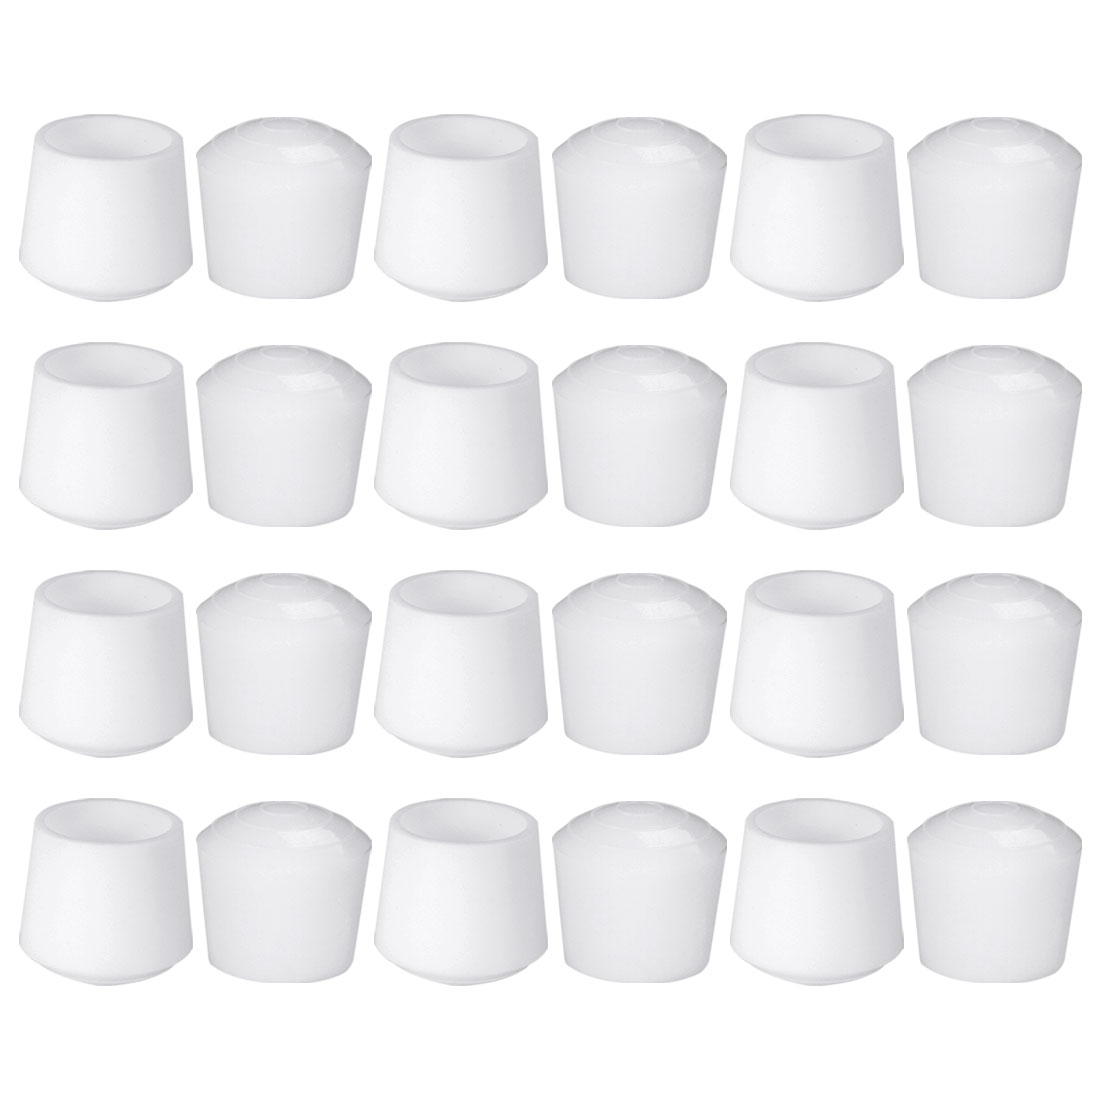 "Rubber Leg Caps Tip Cup Feet Cover 28mm 1 1/10"" Inner Dia 24pcs for Furniture"